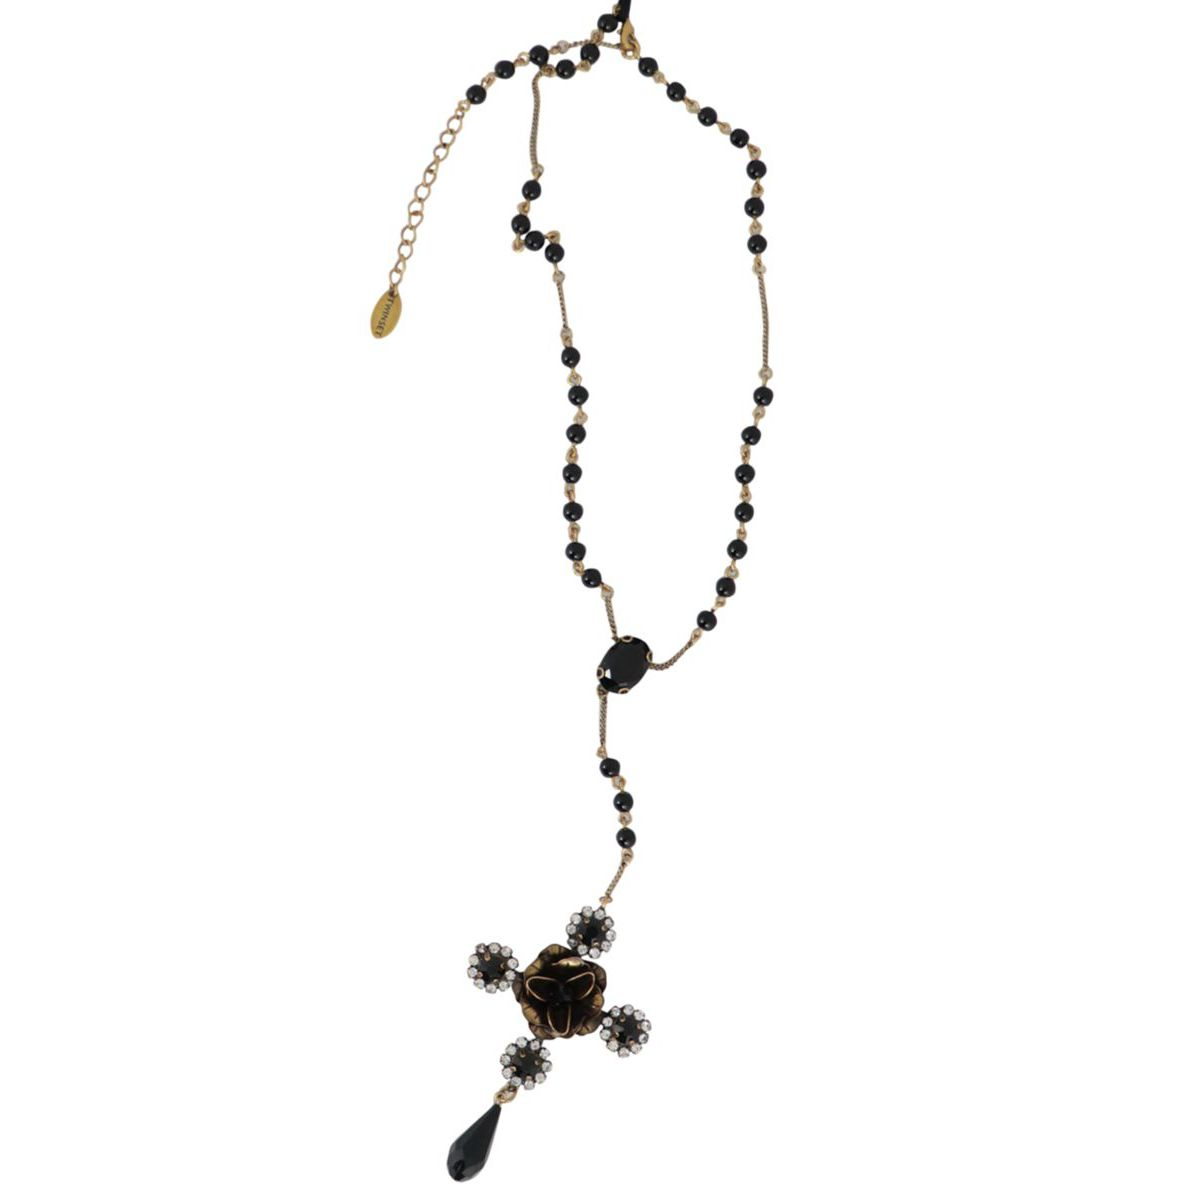 Metal rosary necklace with floral cross and pendant Black Twin-Set